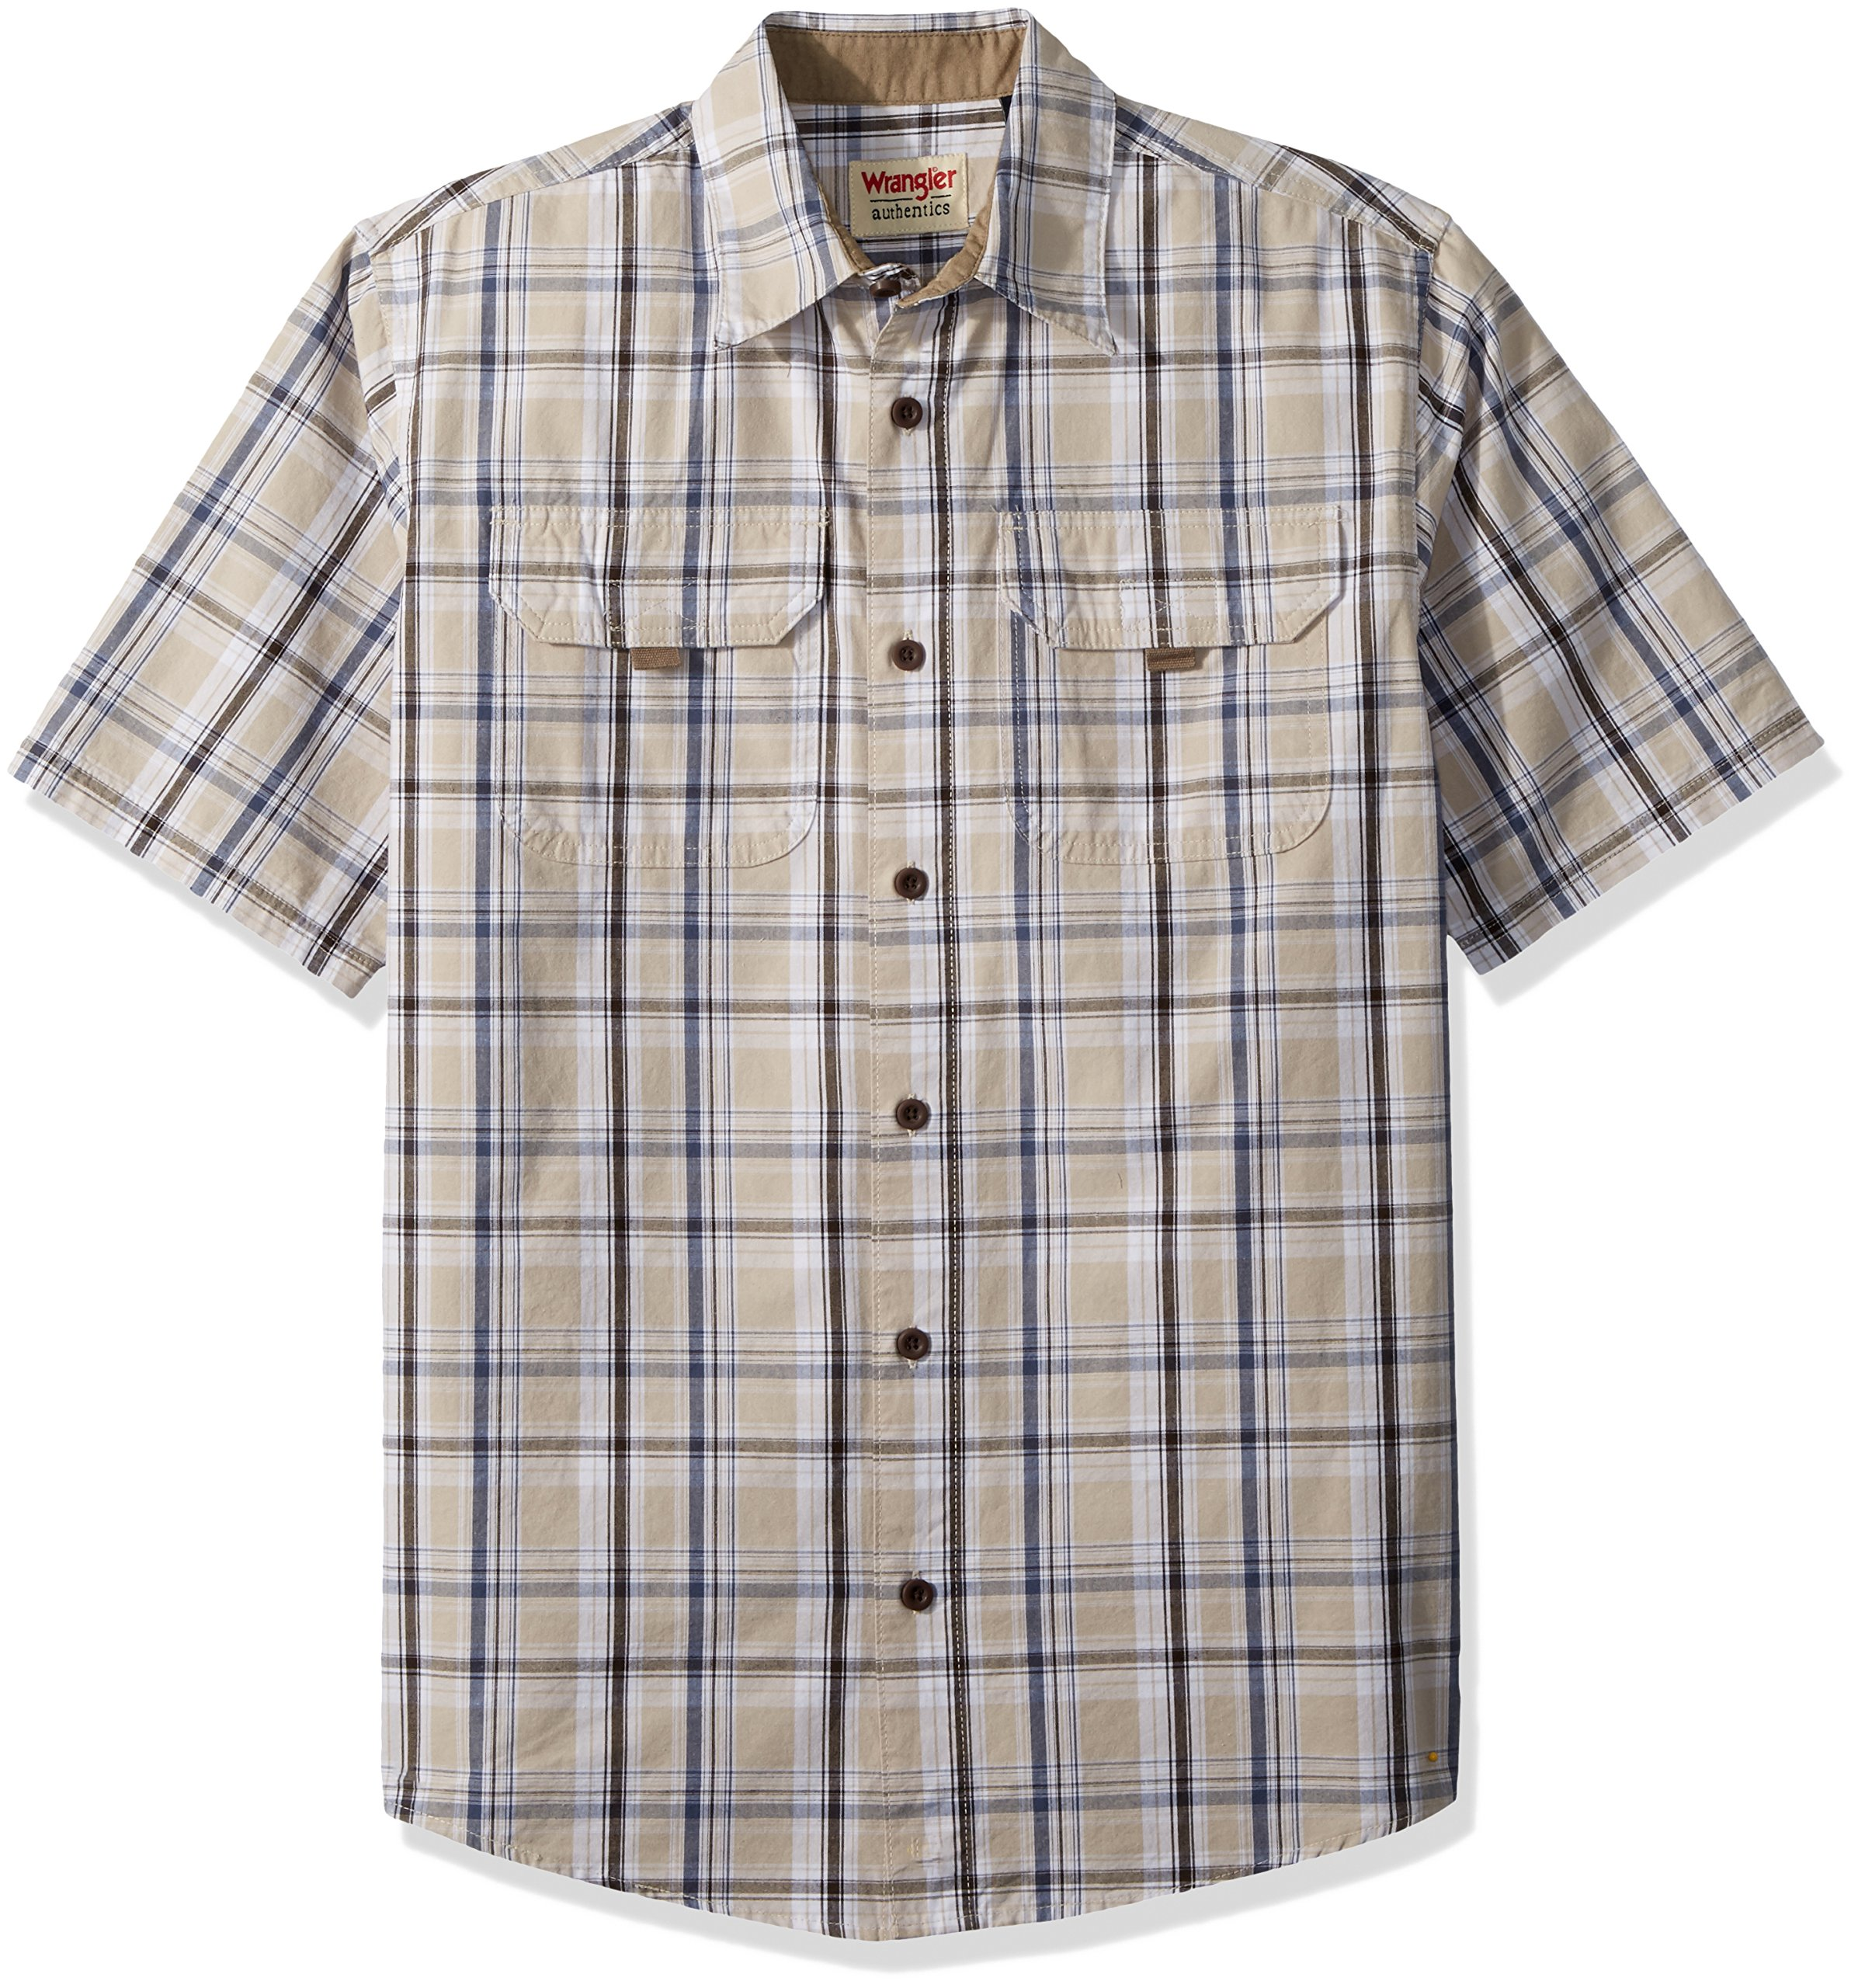 Wrangler Authentics Men's Authentics Short Sleeve Canvas Shirt, Dark Putty Plaid, L